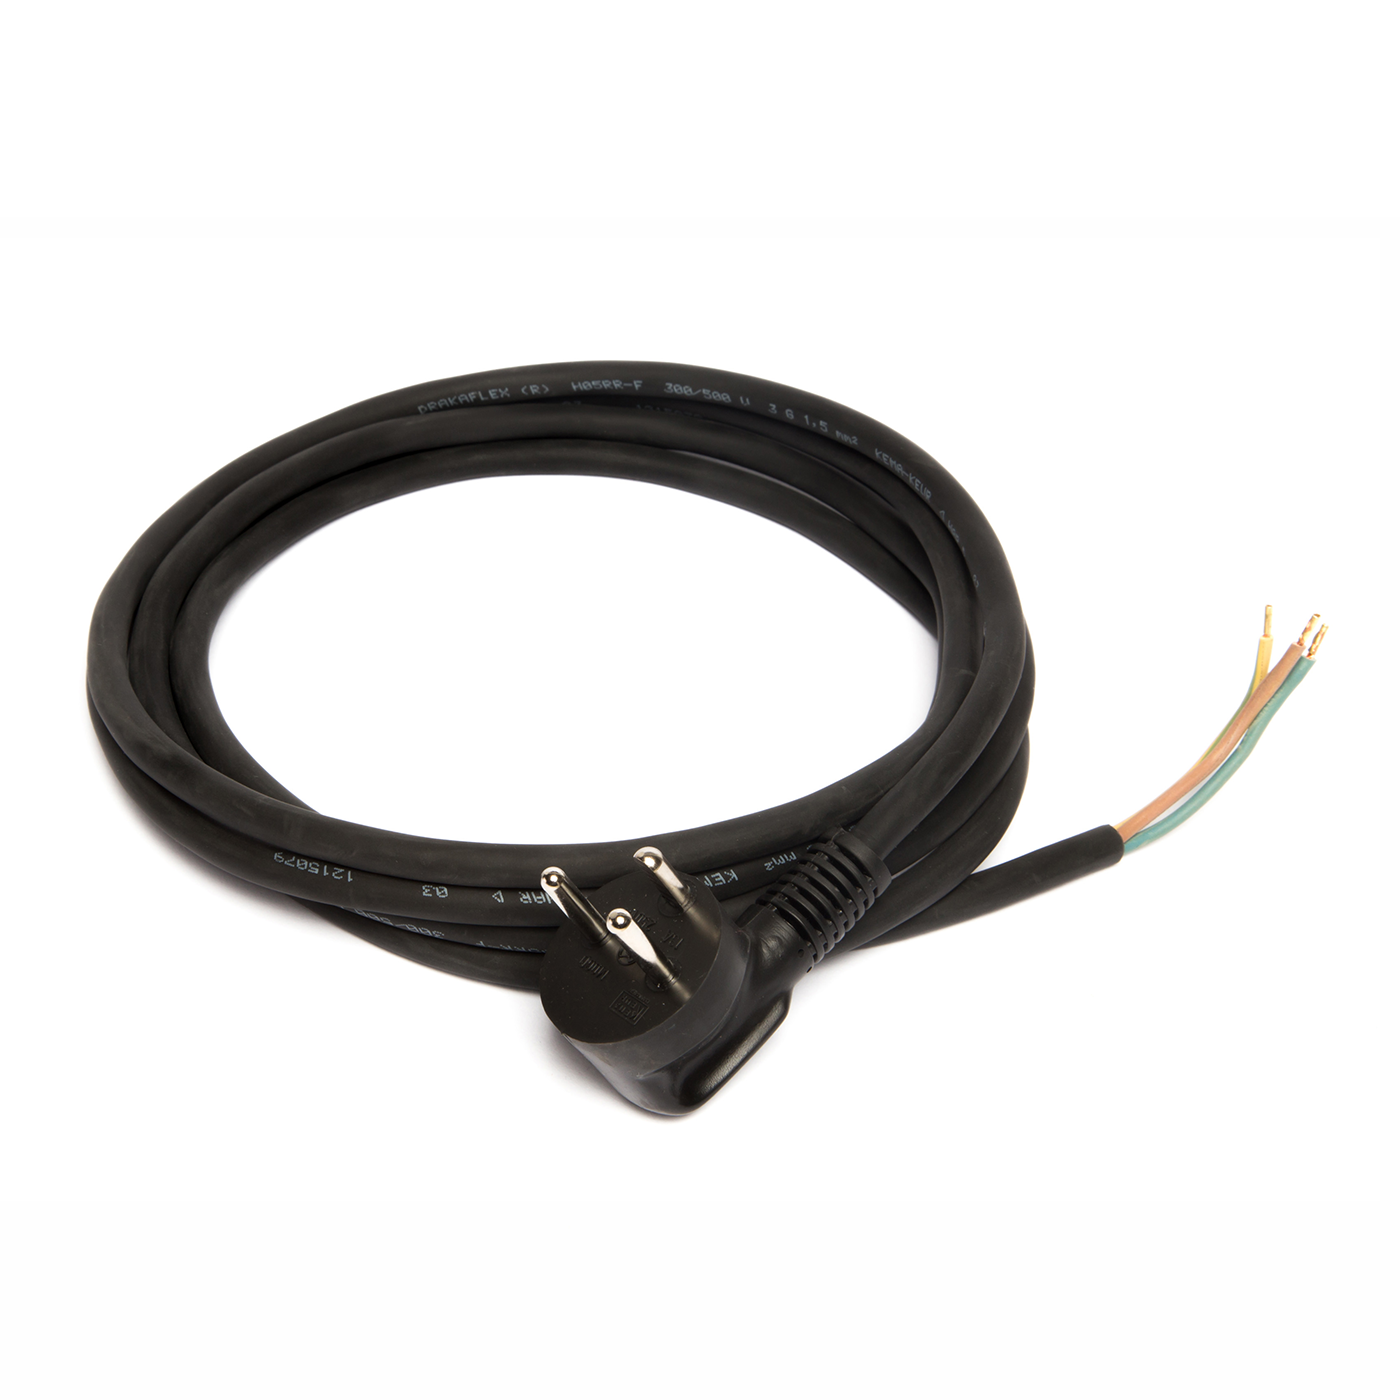 Power cable with Danish plug-in, black